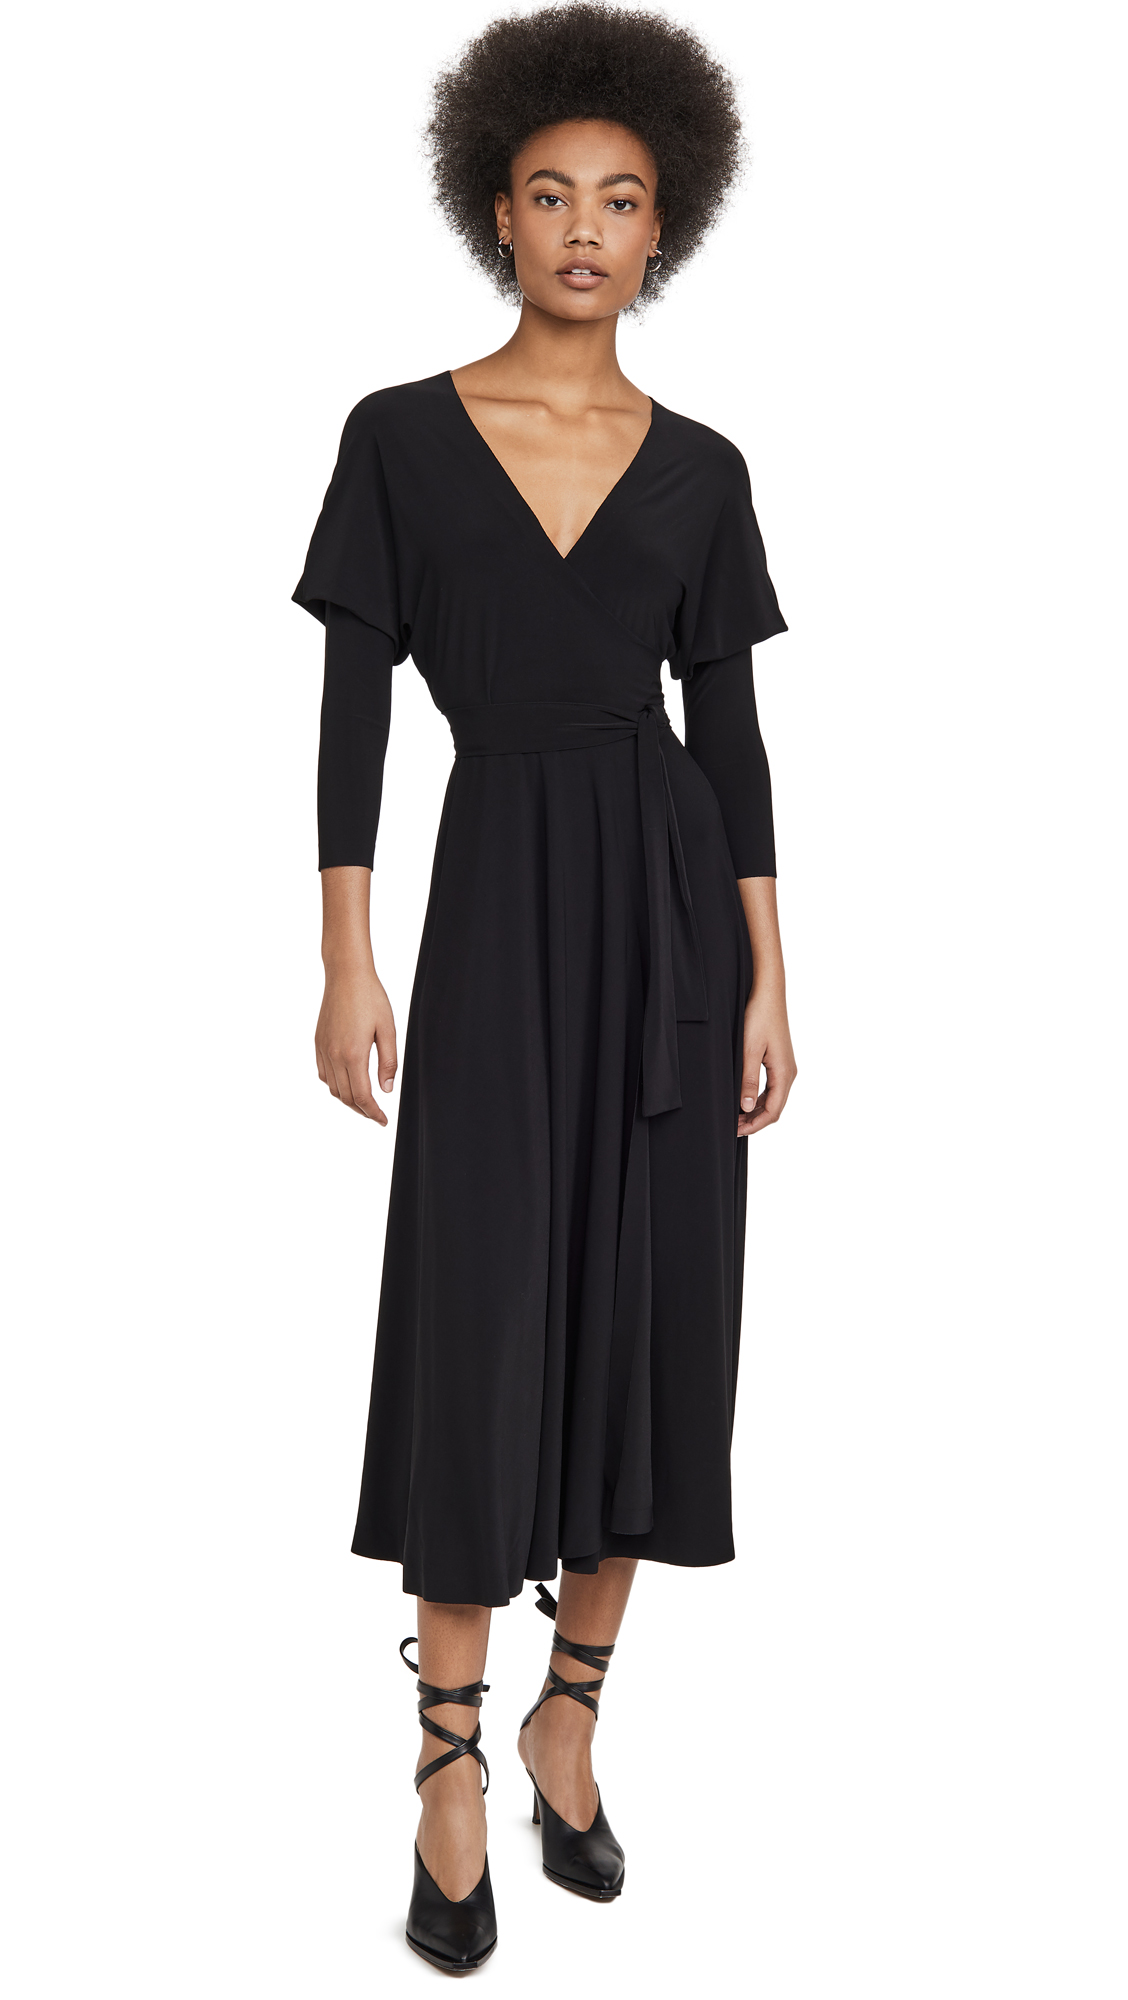 Norma Kamali Dolman Wrap Flared Dress - 40% Off Sale